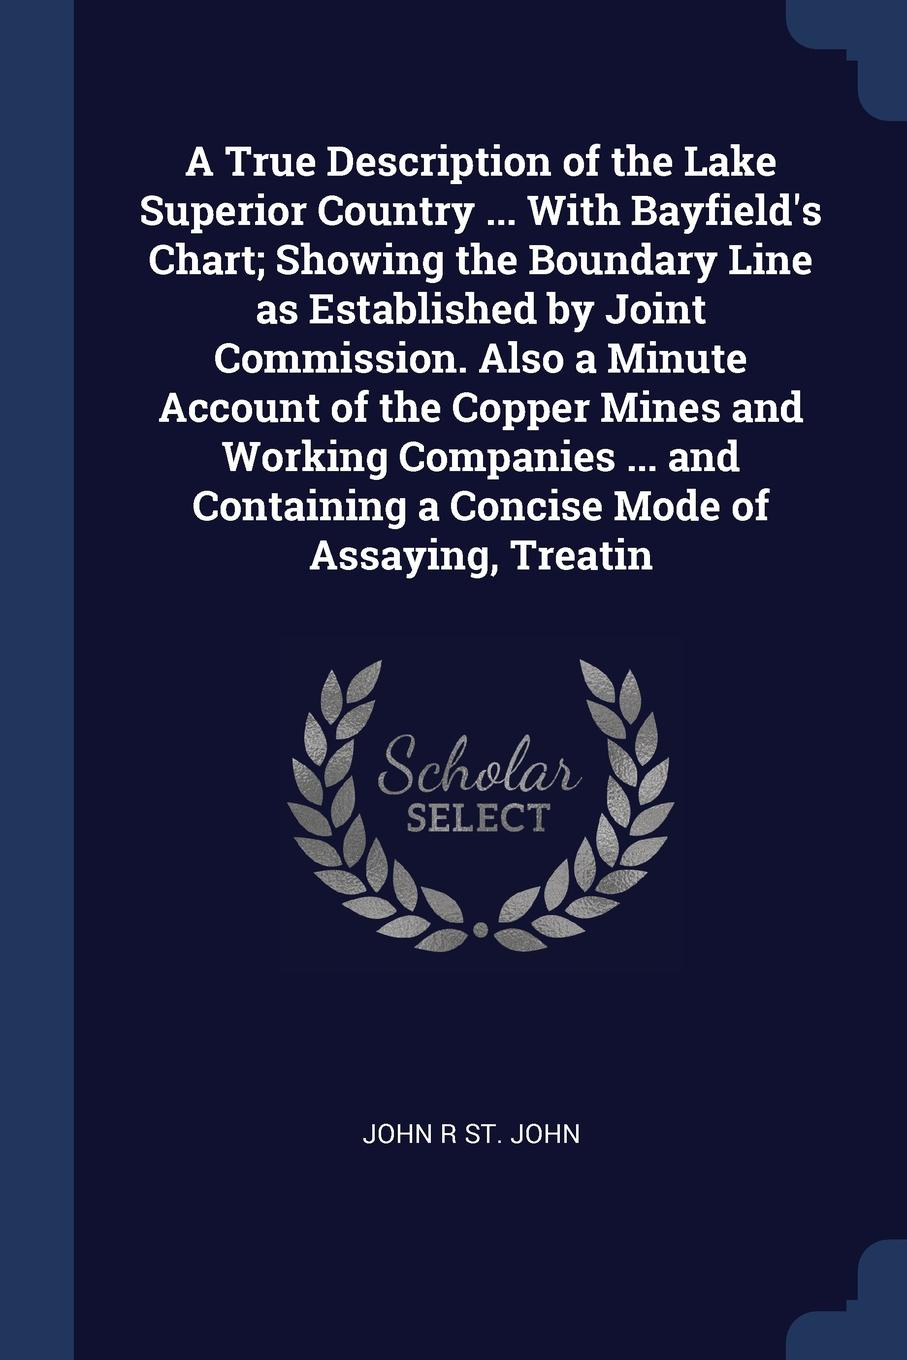 A True Description of the Lake Superior Country ... With Bayfield`s Chart; Showing the Boundary Line as Established by Joint Commission. Also a Minute Account of the Copper Mines and Working Companies ... and Containing a Concise Mode of Assaying,...